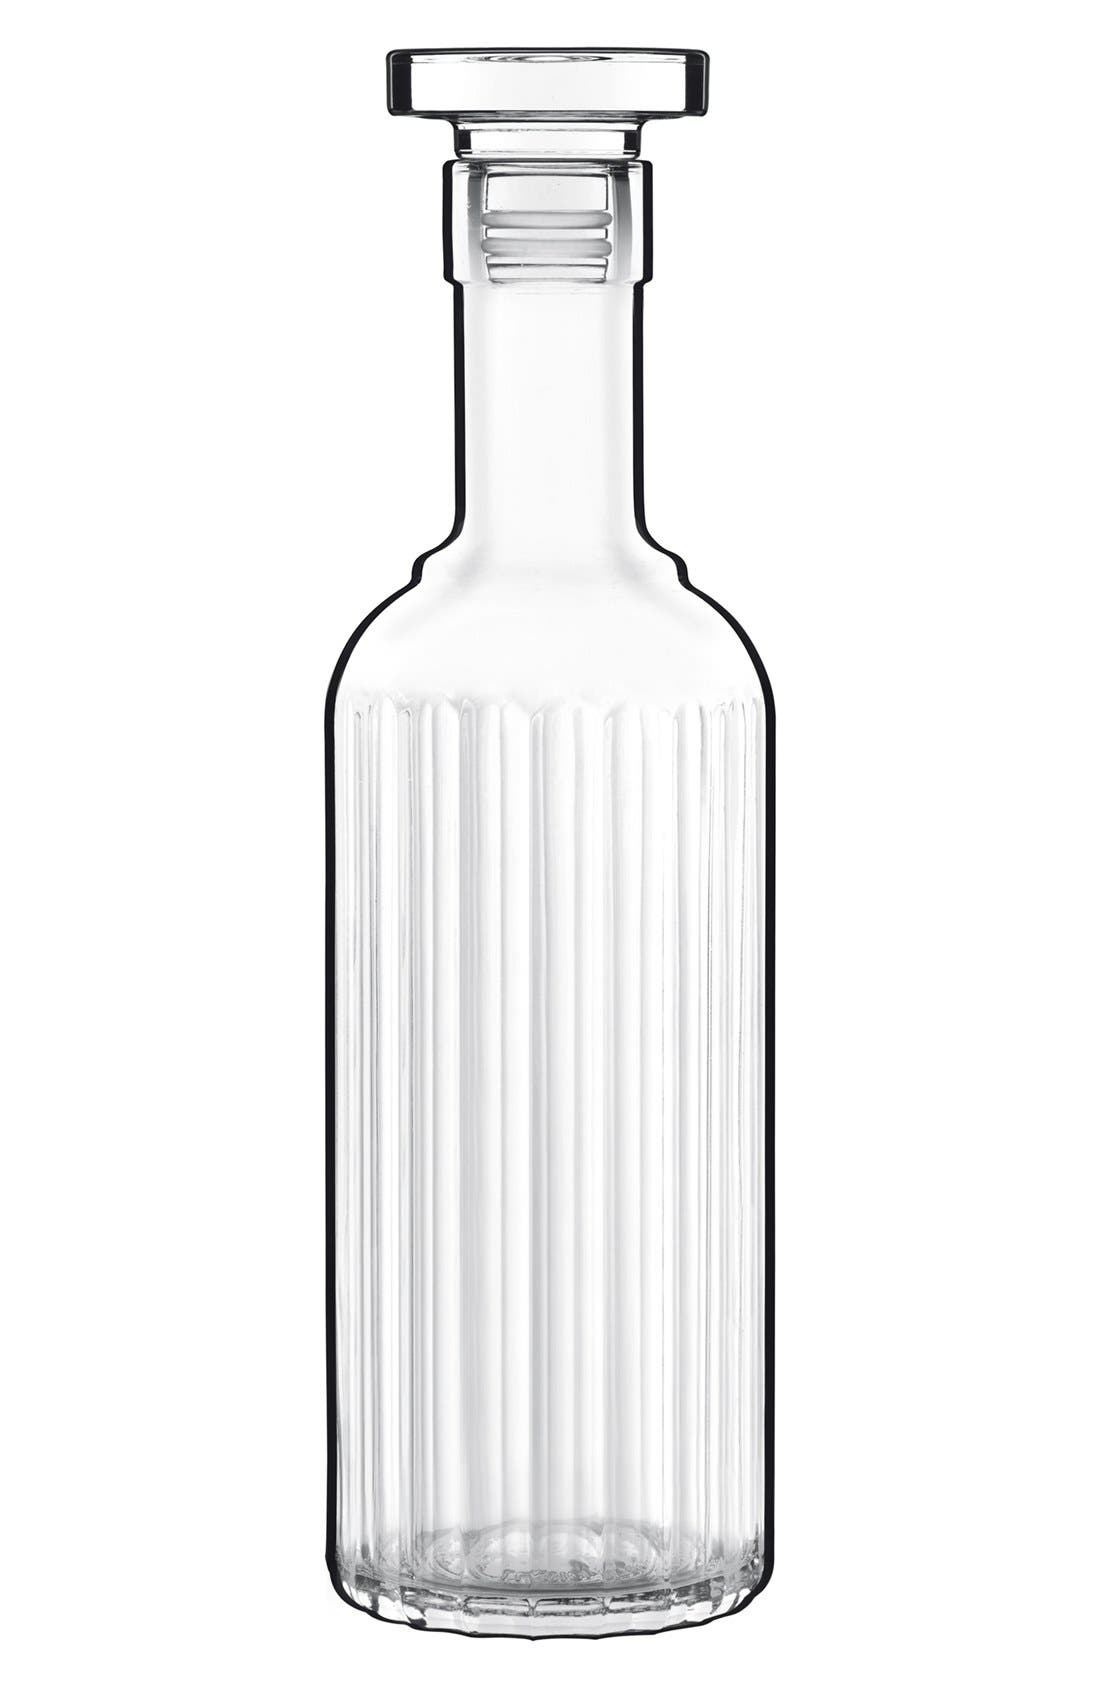 'Bach' Spirits Bottle,                         Main,                         color, White